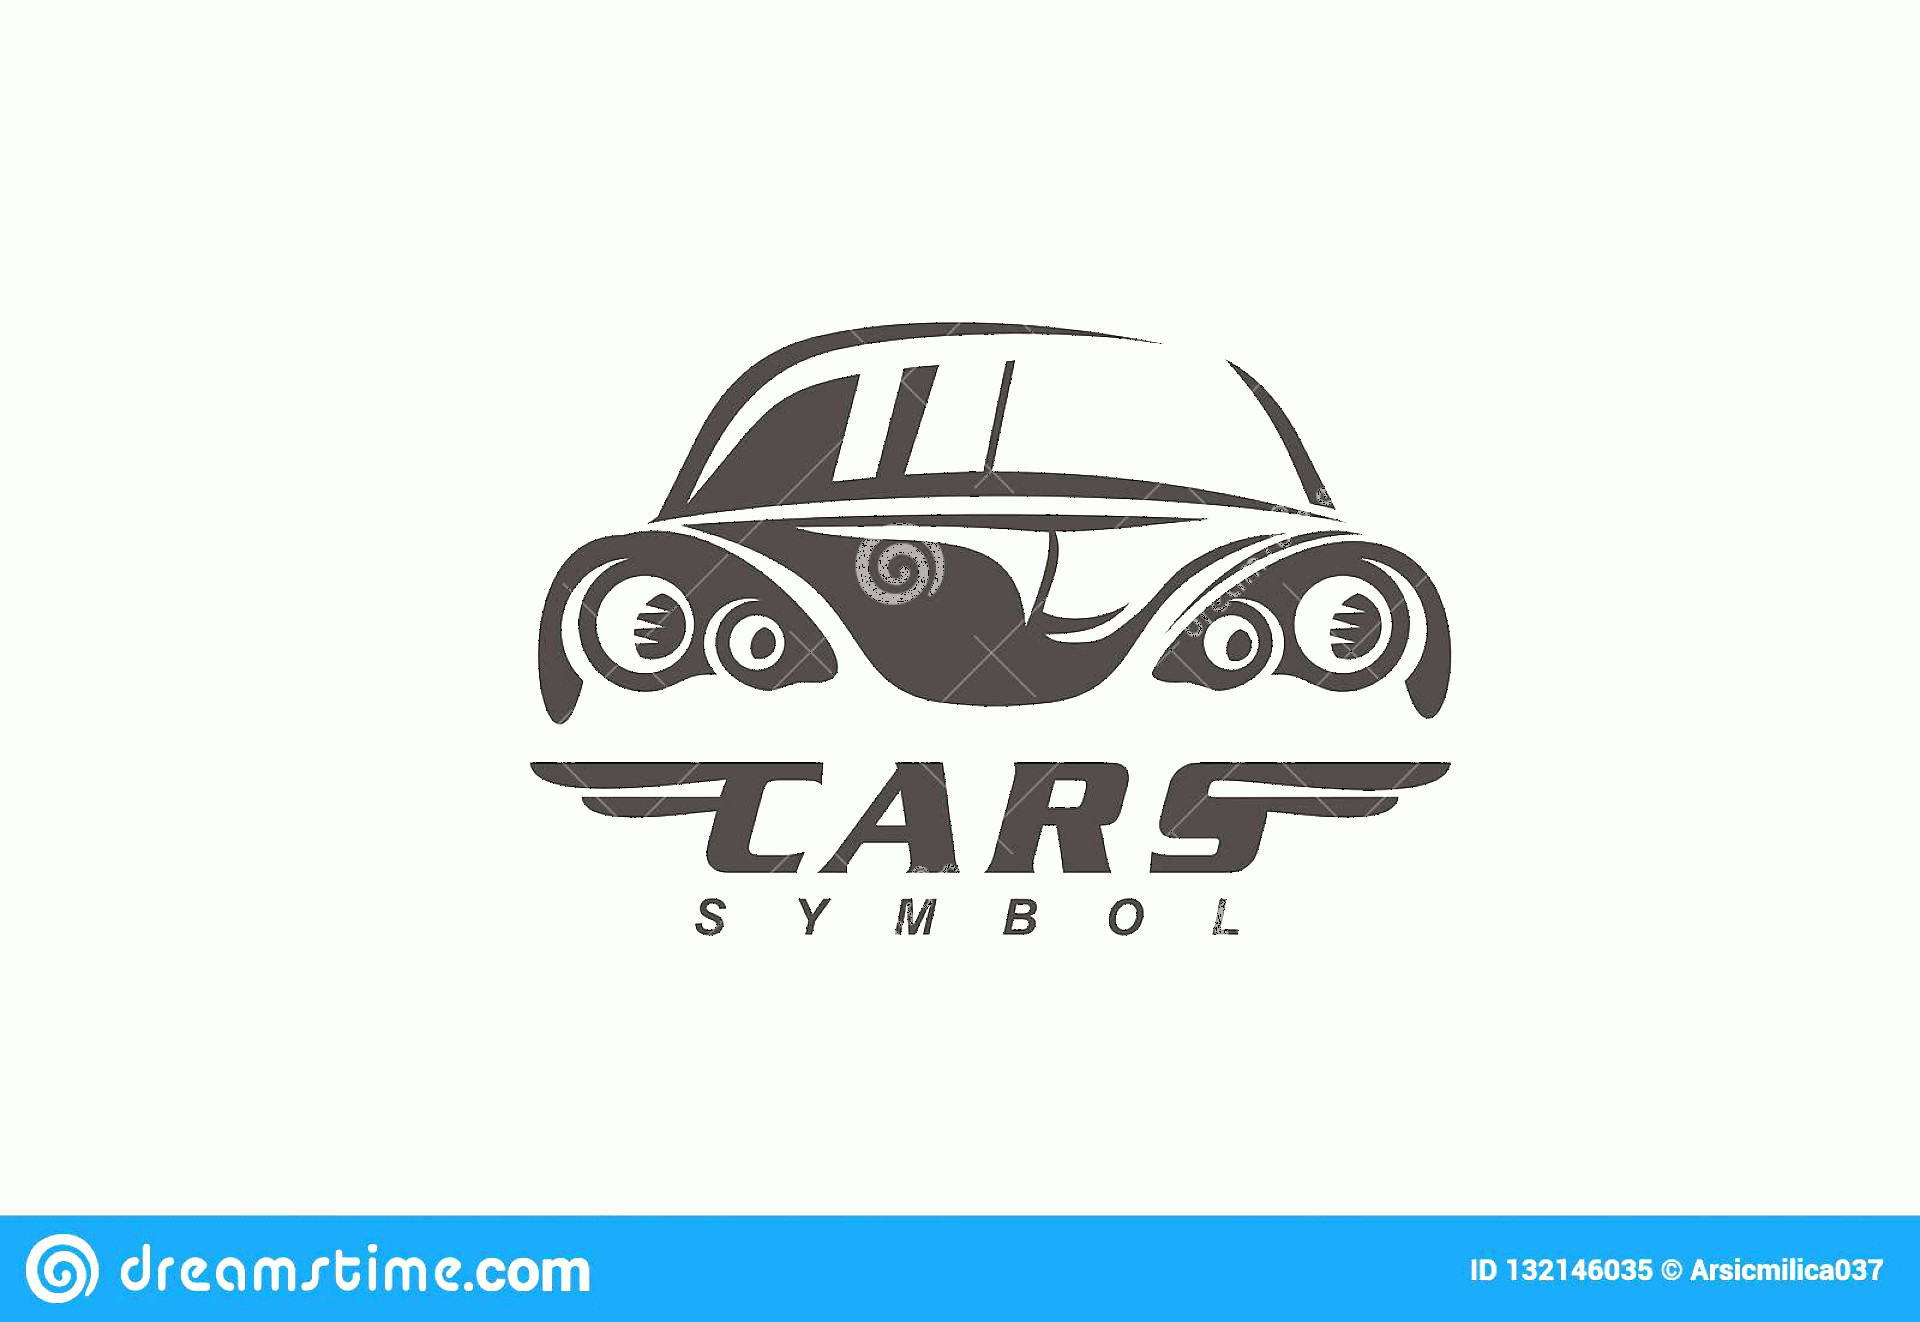 Vector Car: Auto Design Car Logo Vector Concept Vehicle Icon Silhouette Auto Design Car Logo Vector Concept Vehicle Icon Silhouette Image